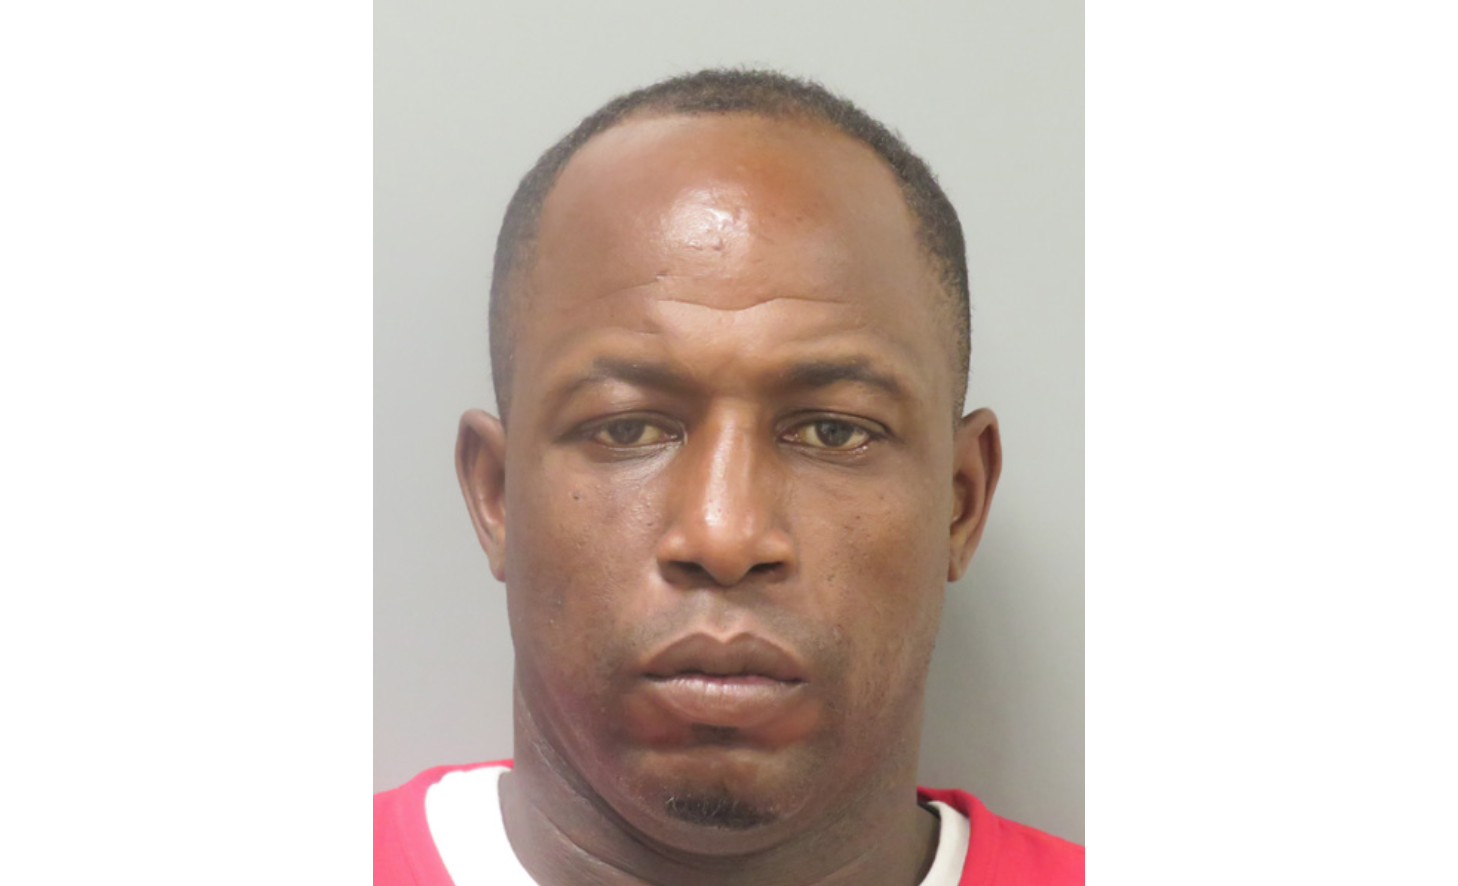 Fugitive Wanted in Sex Crime Investigation Arrested in Thibodaux